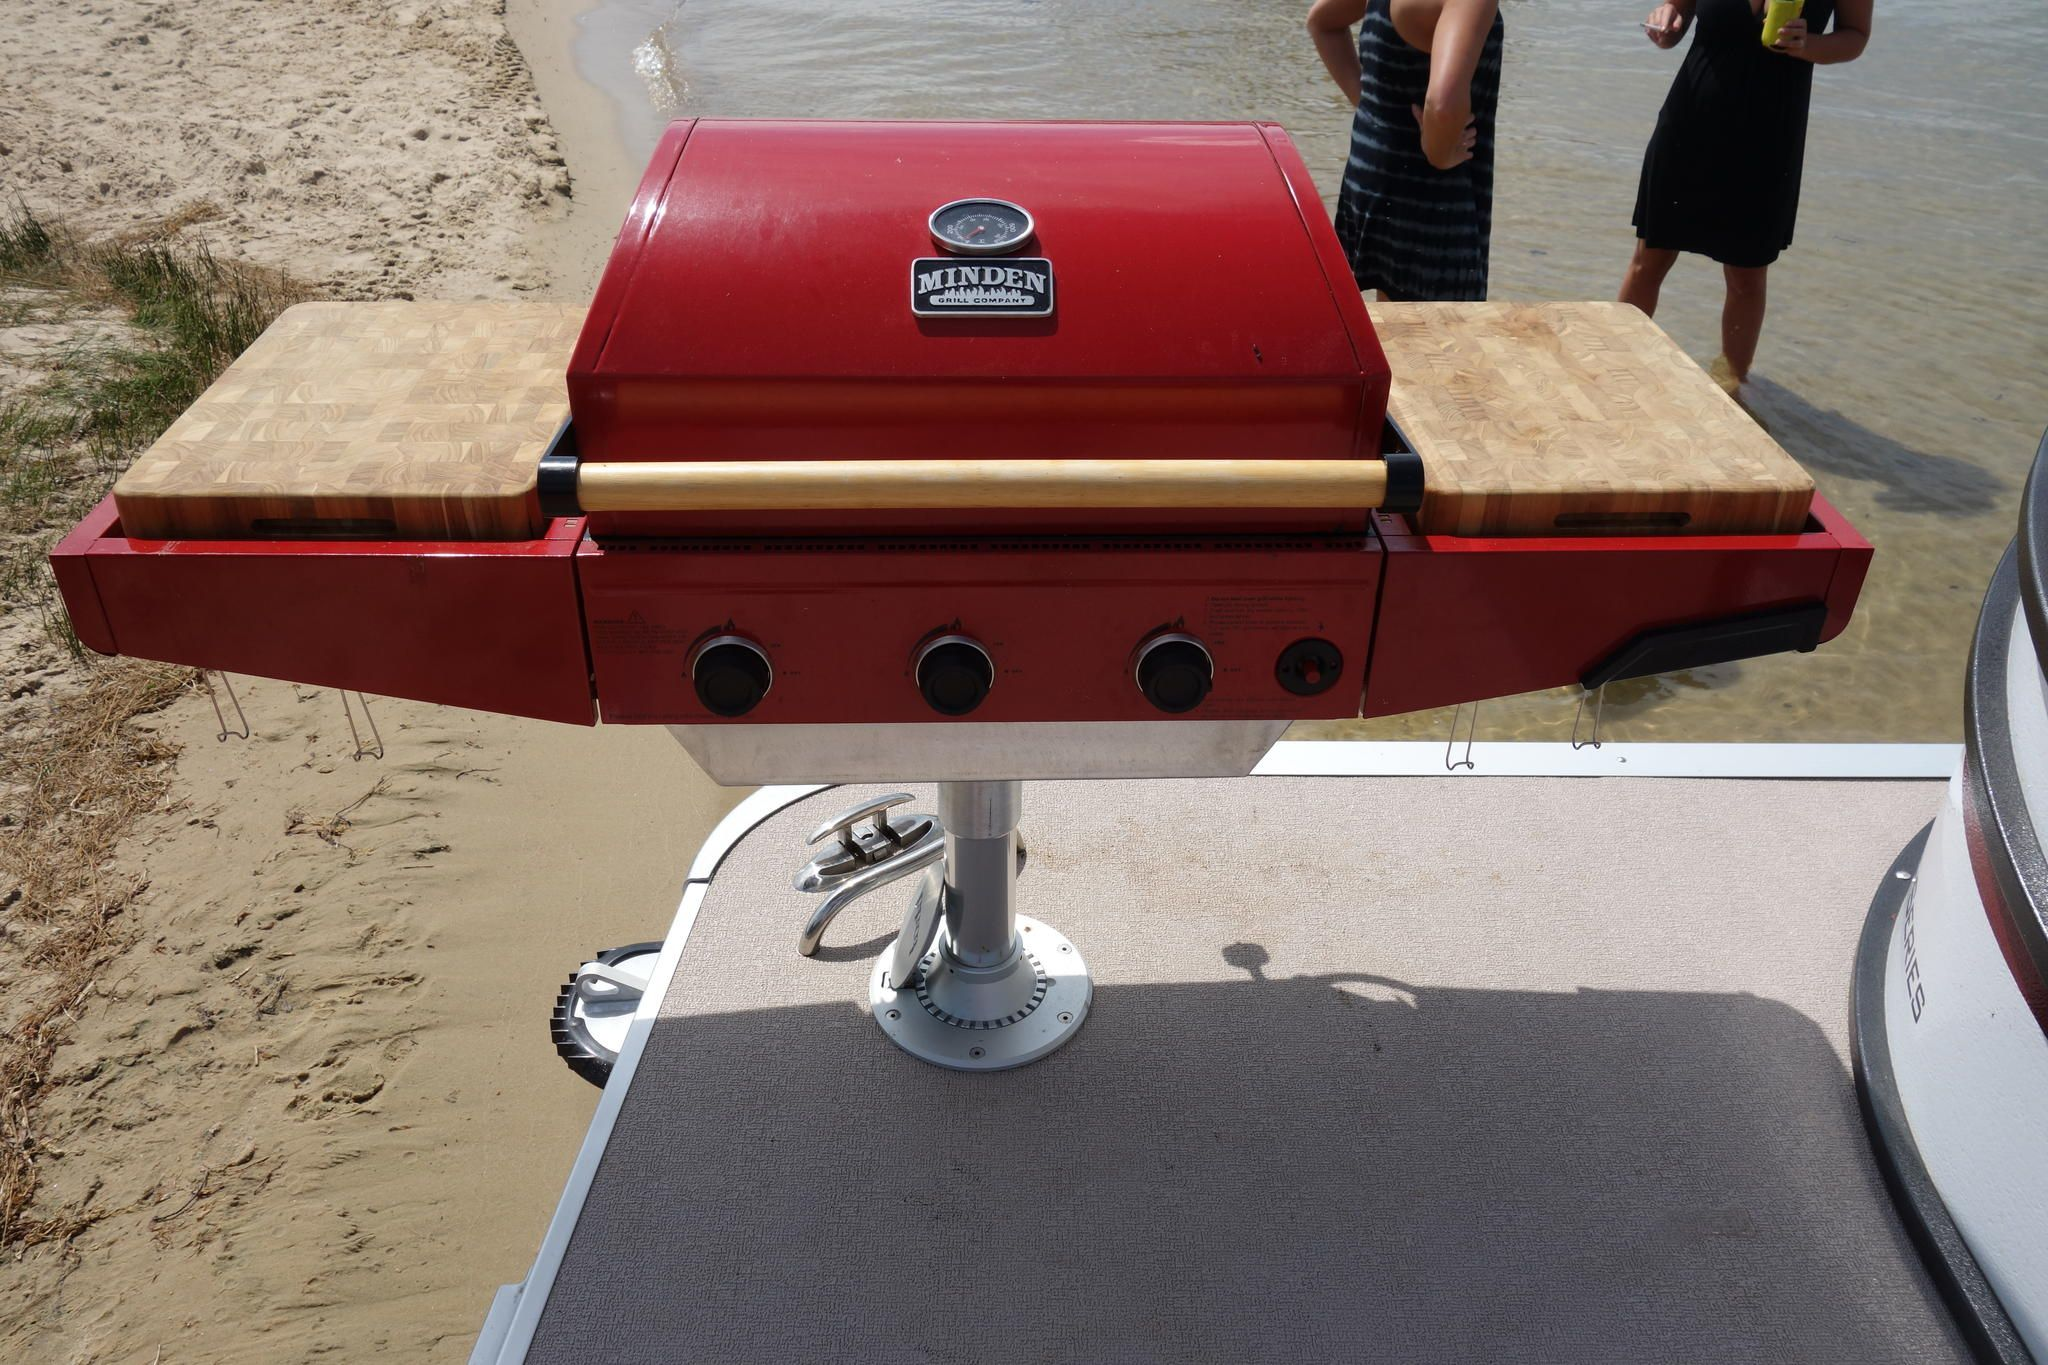 ca burner reviews deluxe portable char pedestal pdp outdoor grill charbroil wayfair propane broil gas